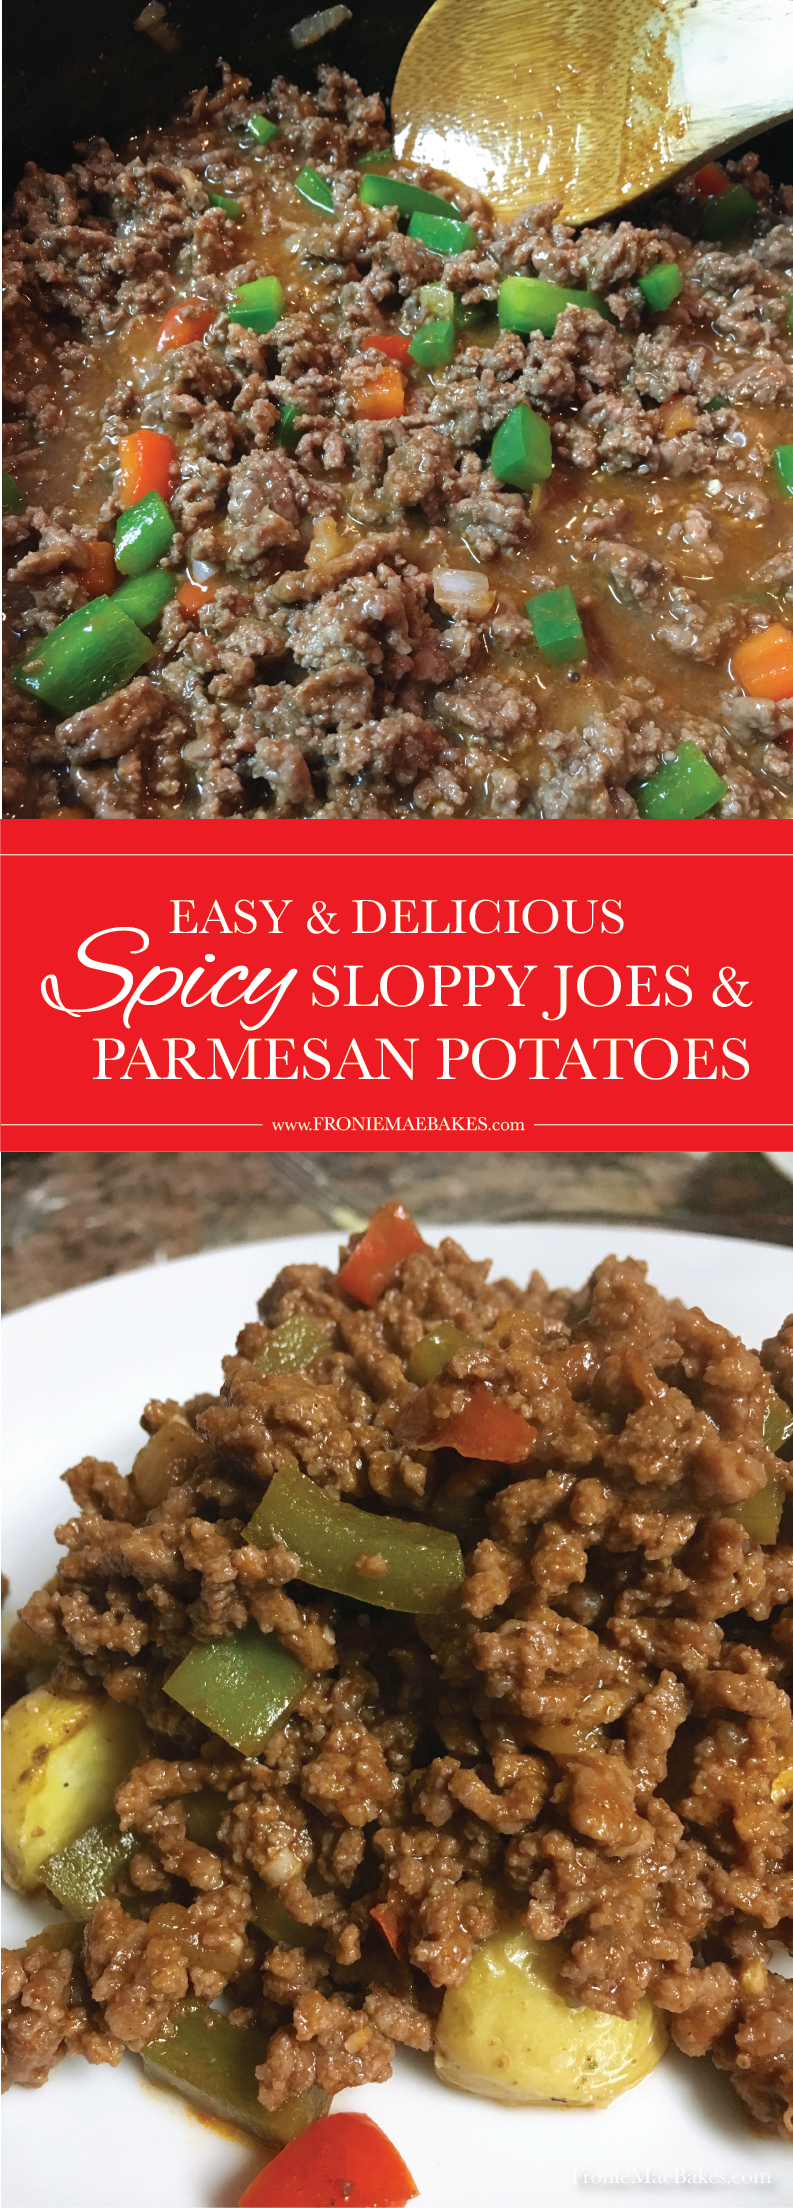 Make these delicious Spicy Sloppy Joes and Parmesan Potato Bites tonight!  Recipe on www.FronieMaeBakes.com